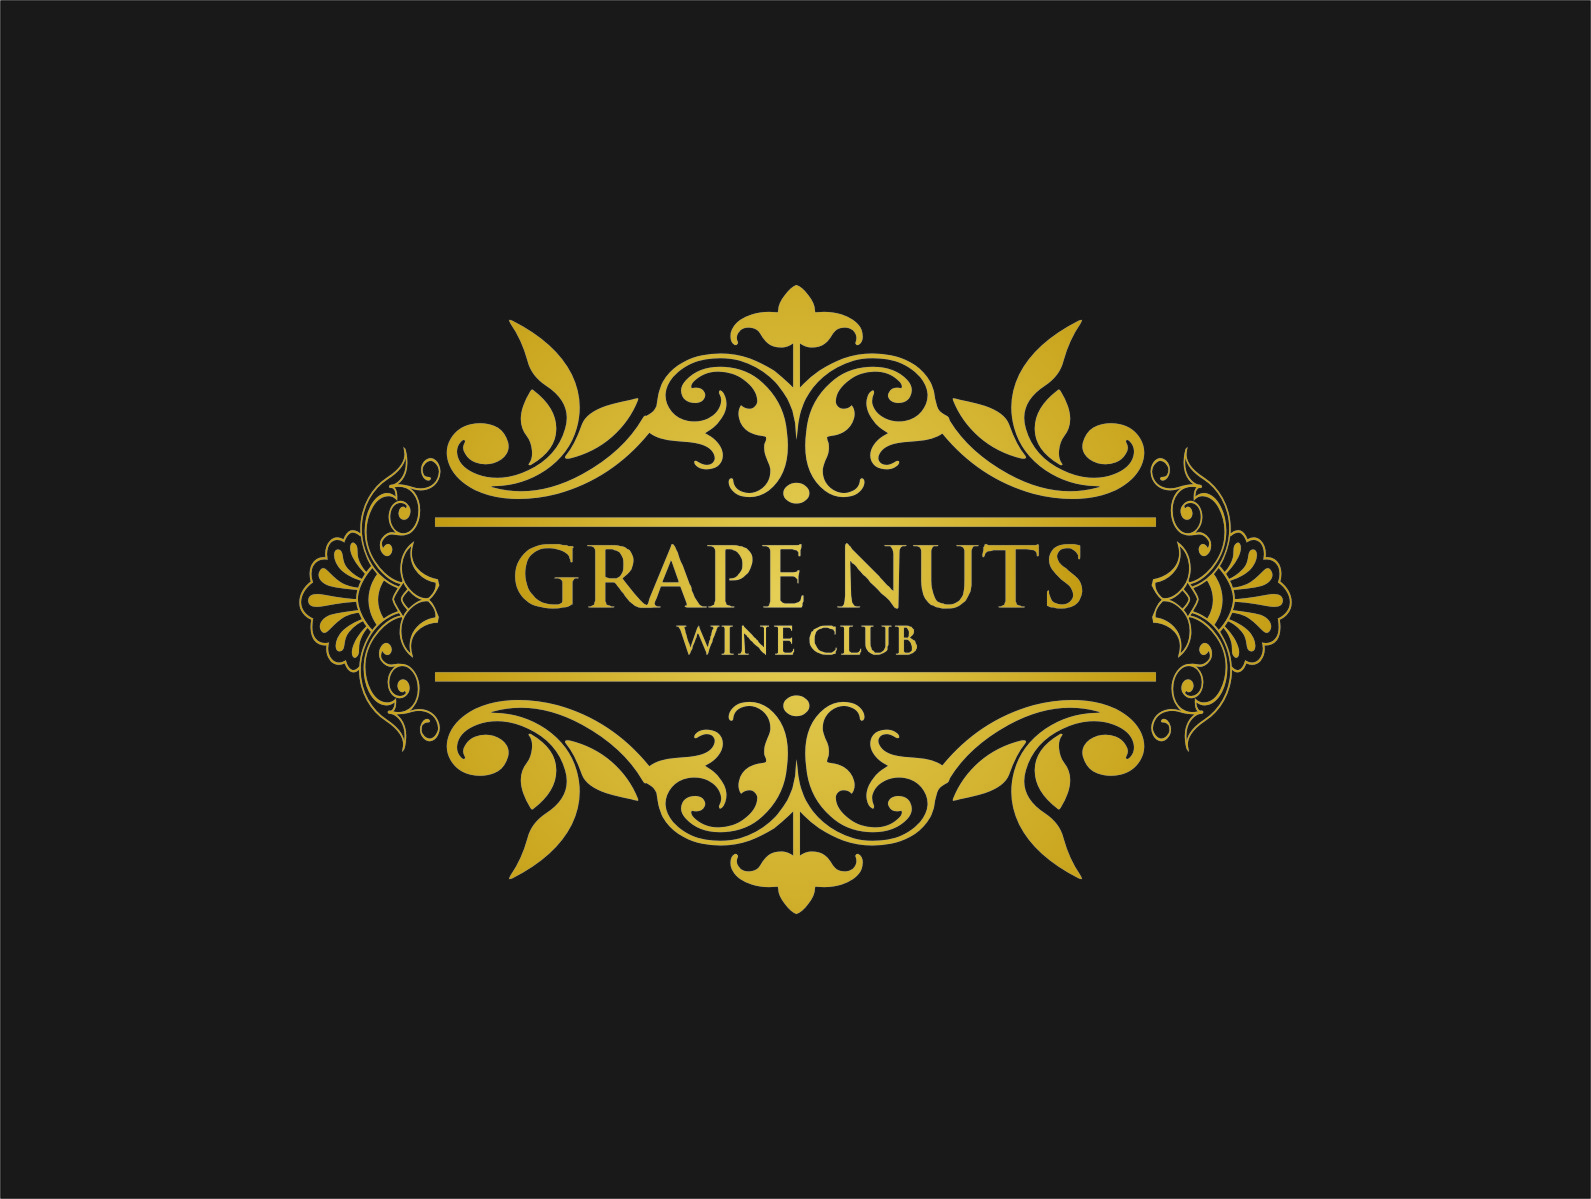 Logo design contests artistic logo design for grape nuts Logo design competitions